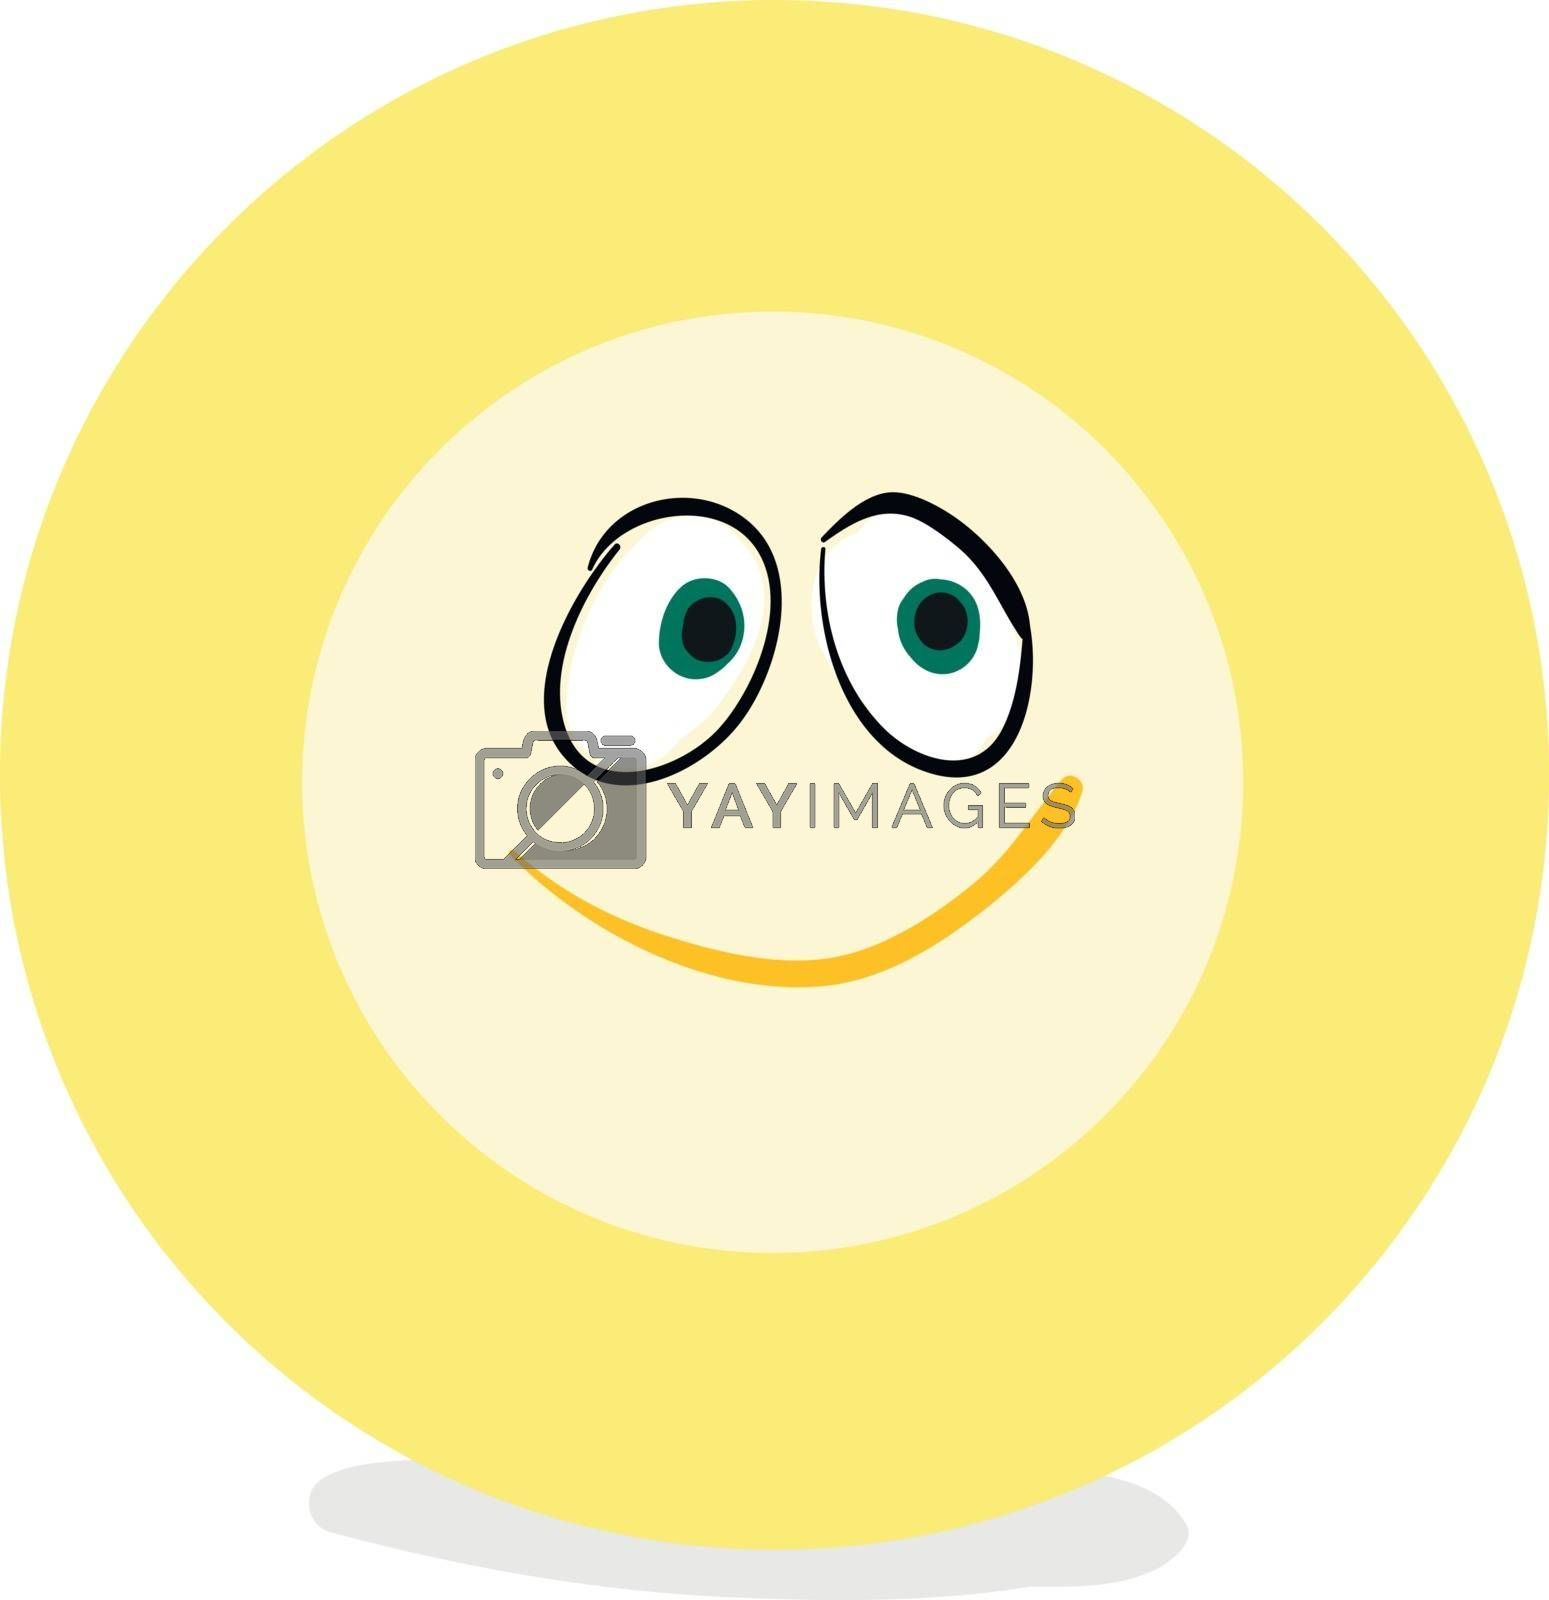 Royalty free image of Emoji funny happy yellow-colored plate vector or color illustrat by Morphart